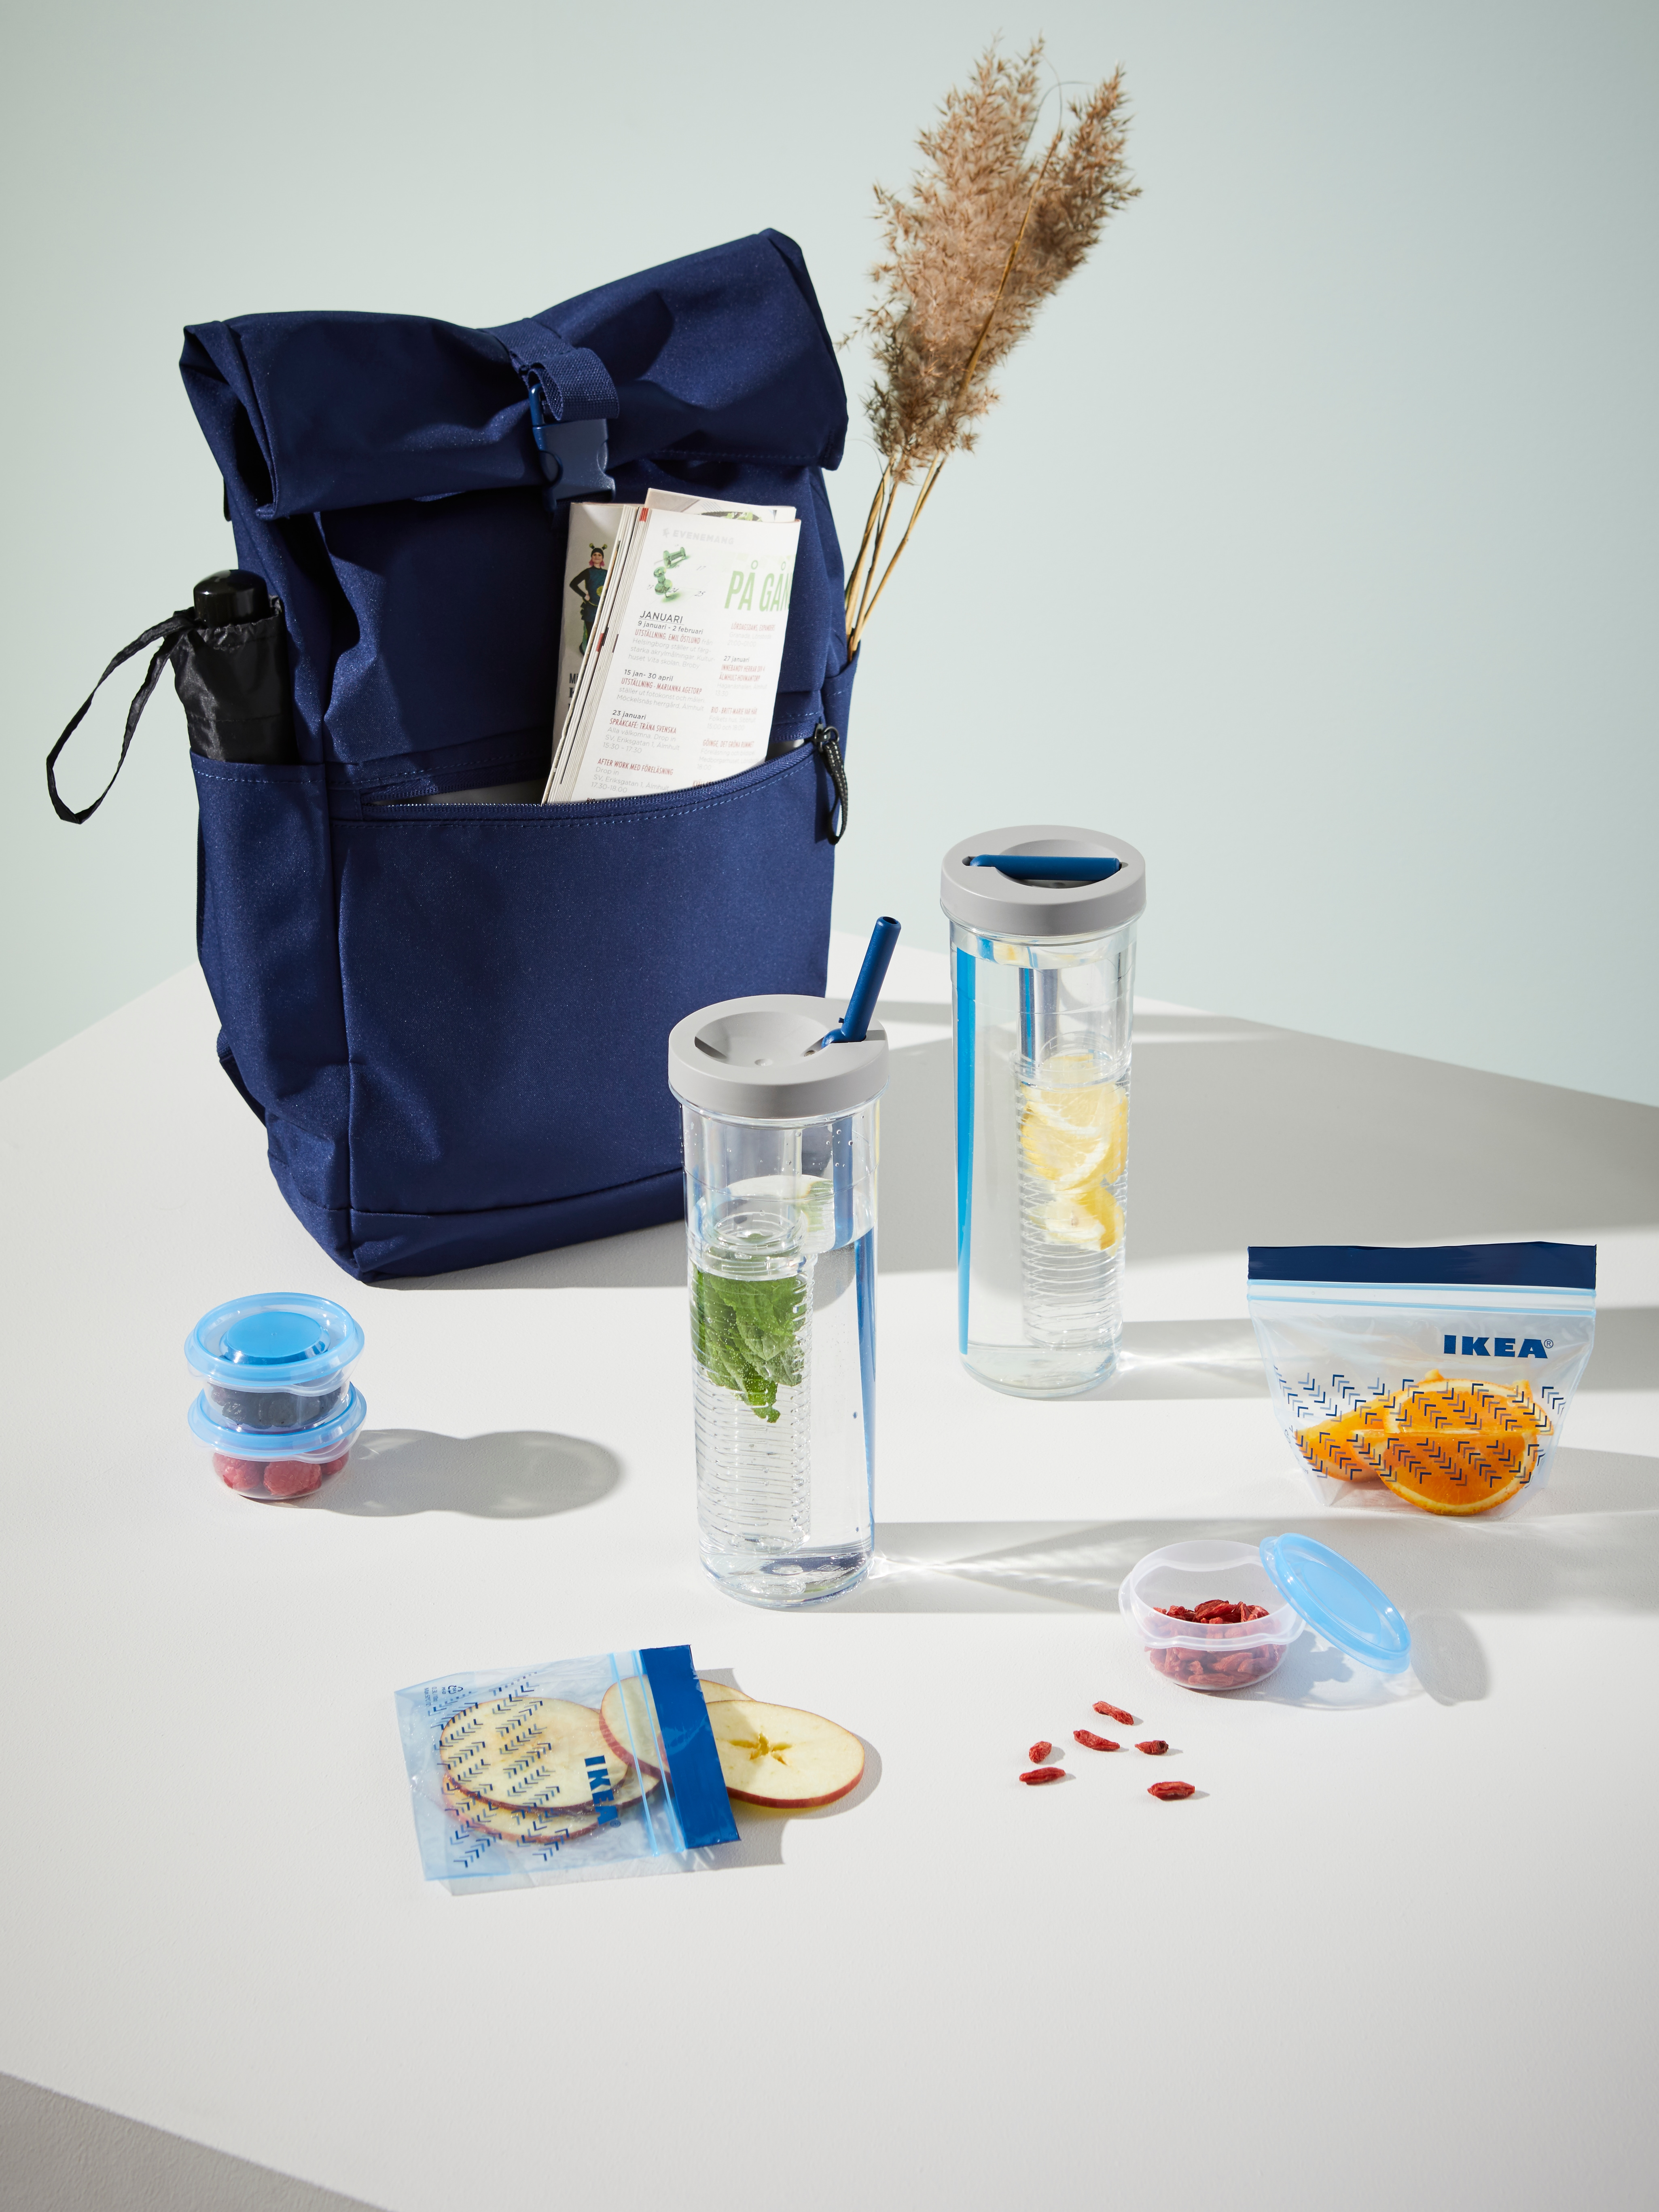 UPPLADDA infusion bottles with straws, water and cut fruit on a table with a STARTTID backpack and food bags and containers.